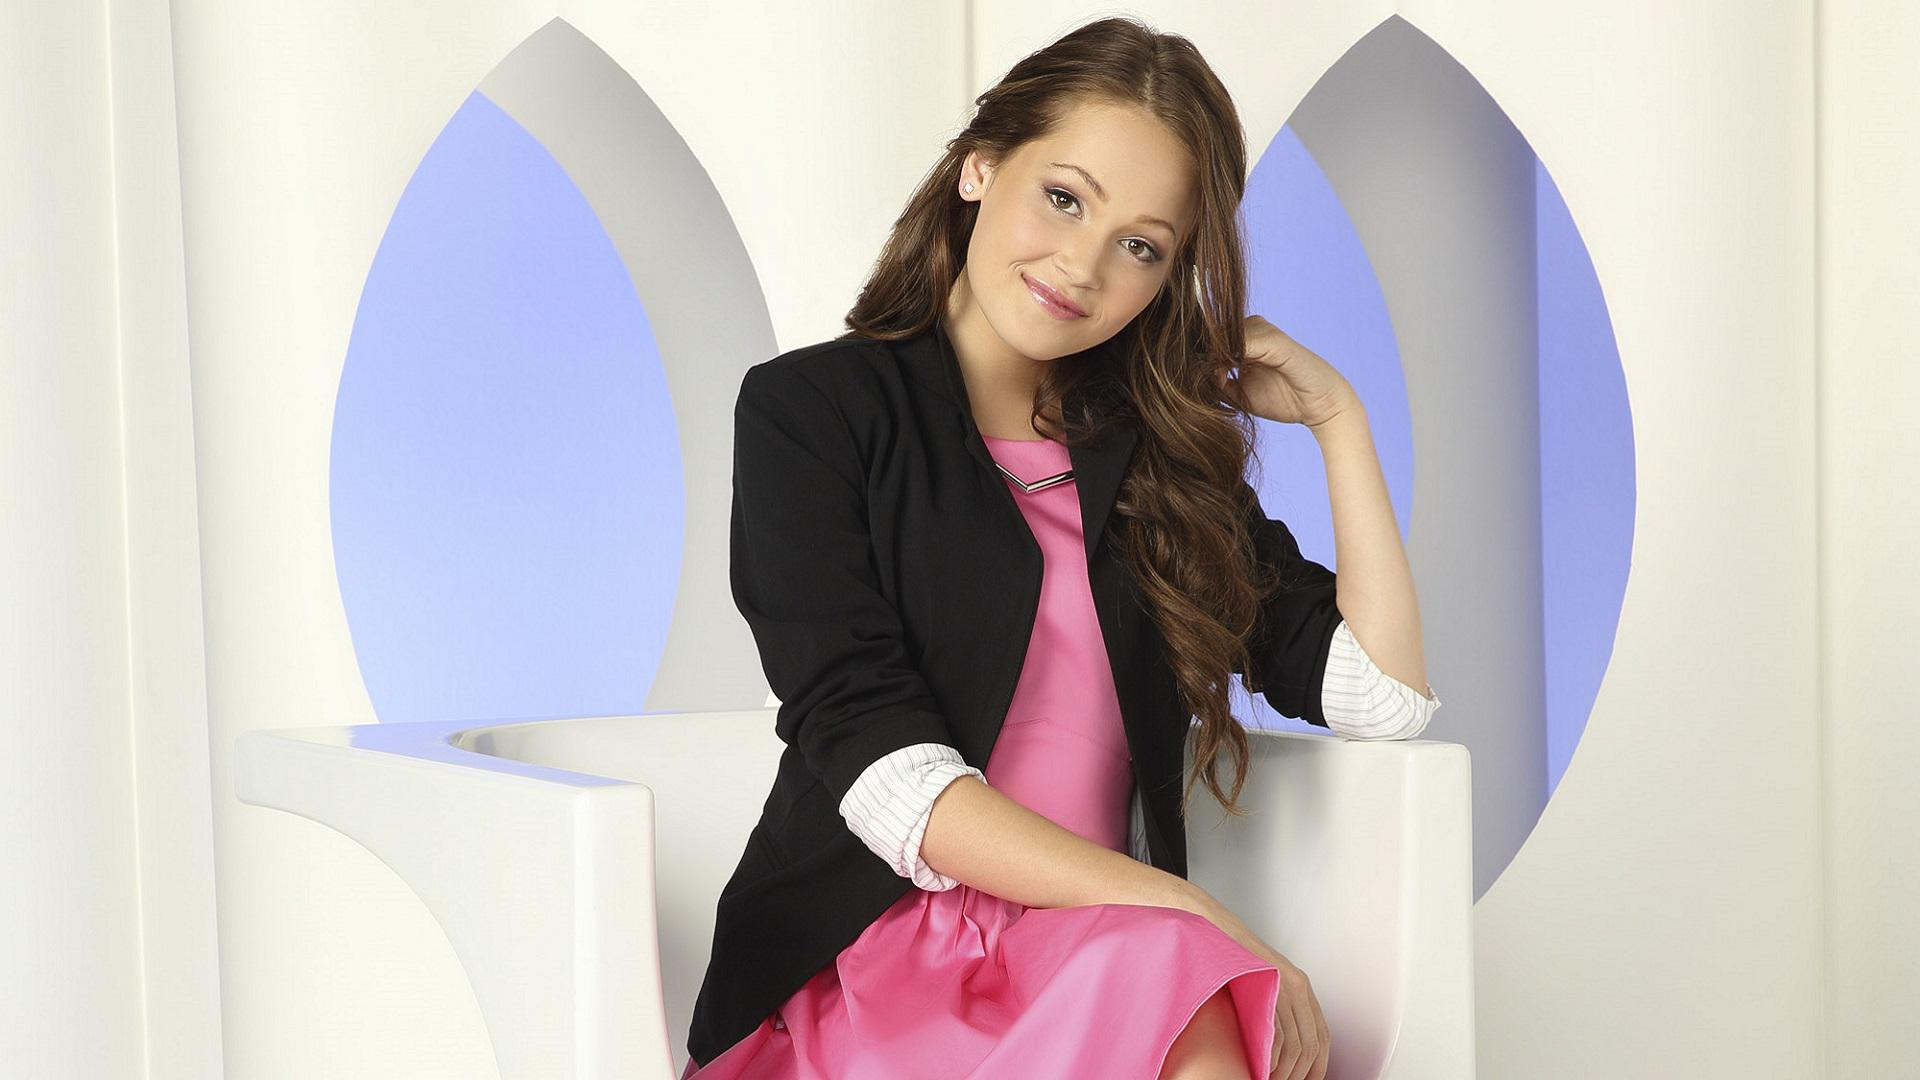 <em>How to Build a Better Boy</em>'s Kelli Berglund sounds off on the celebs who'd make the perfect man